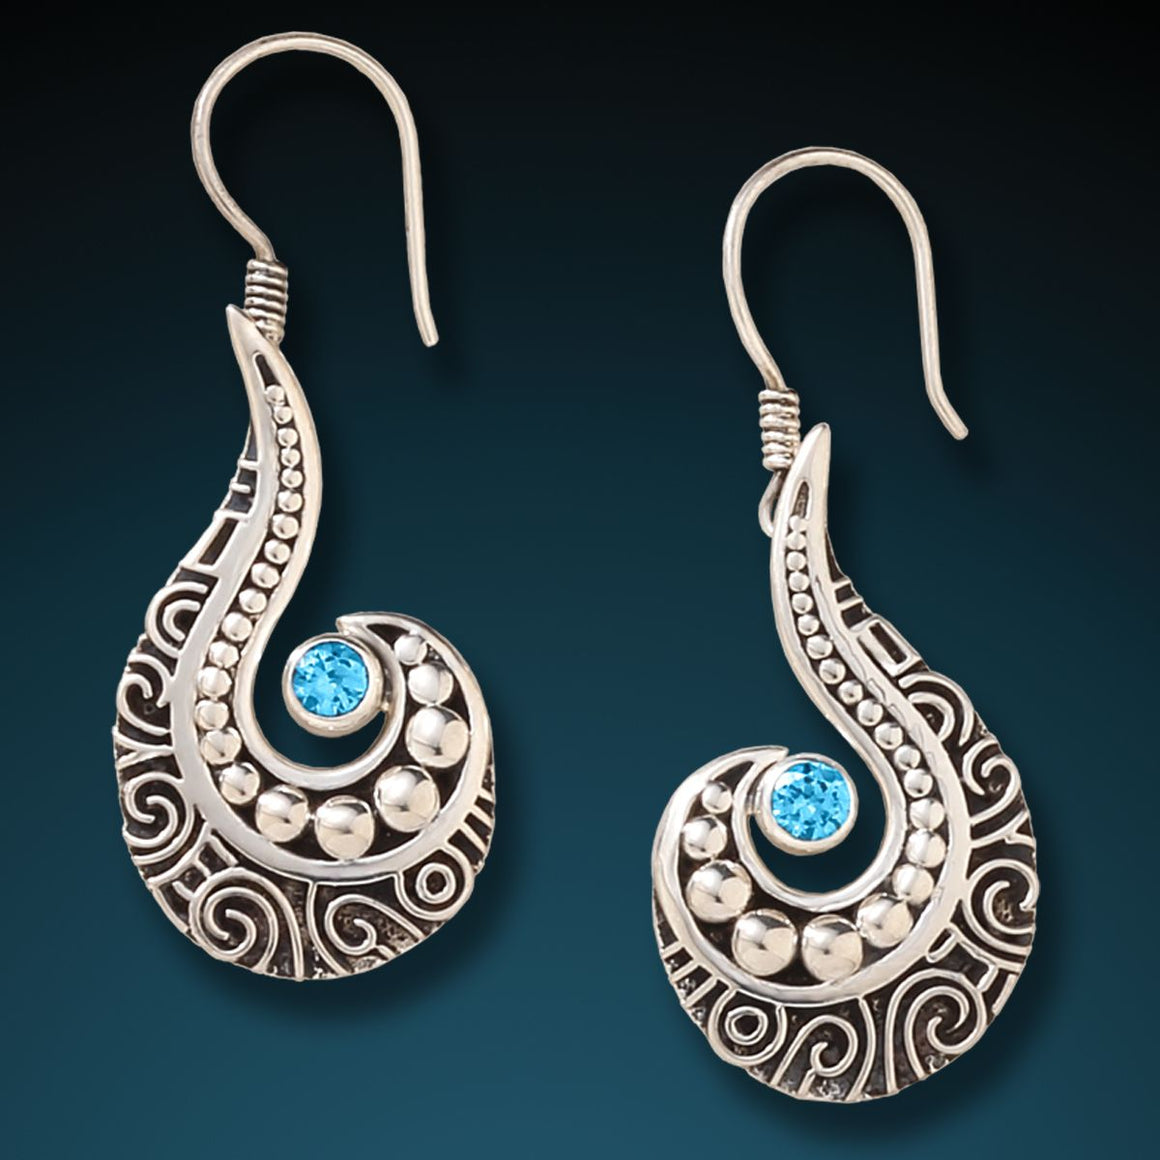 SILVER, BLUE TOPAZ WAVE EARRINGS - OCEAN WAVES